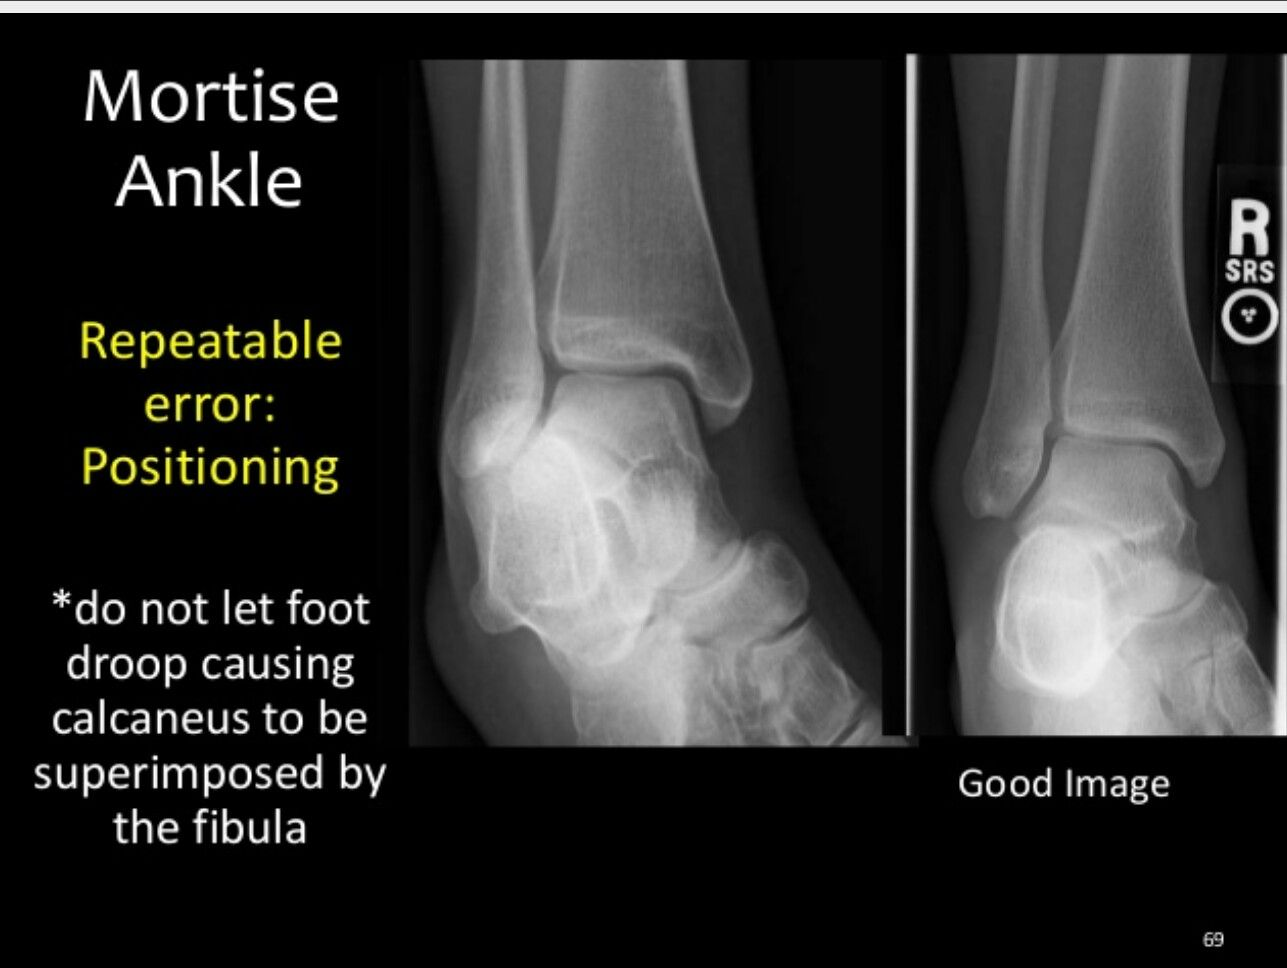 Mortise ankle | Rad tech | Pinterest | Rad tech and Radiology